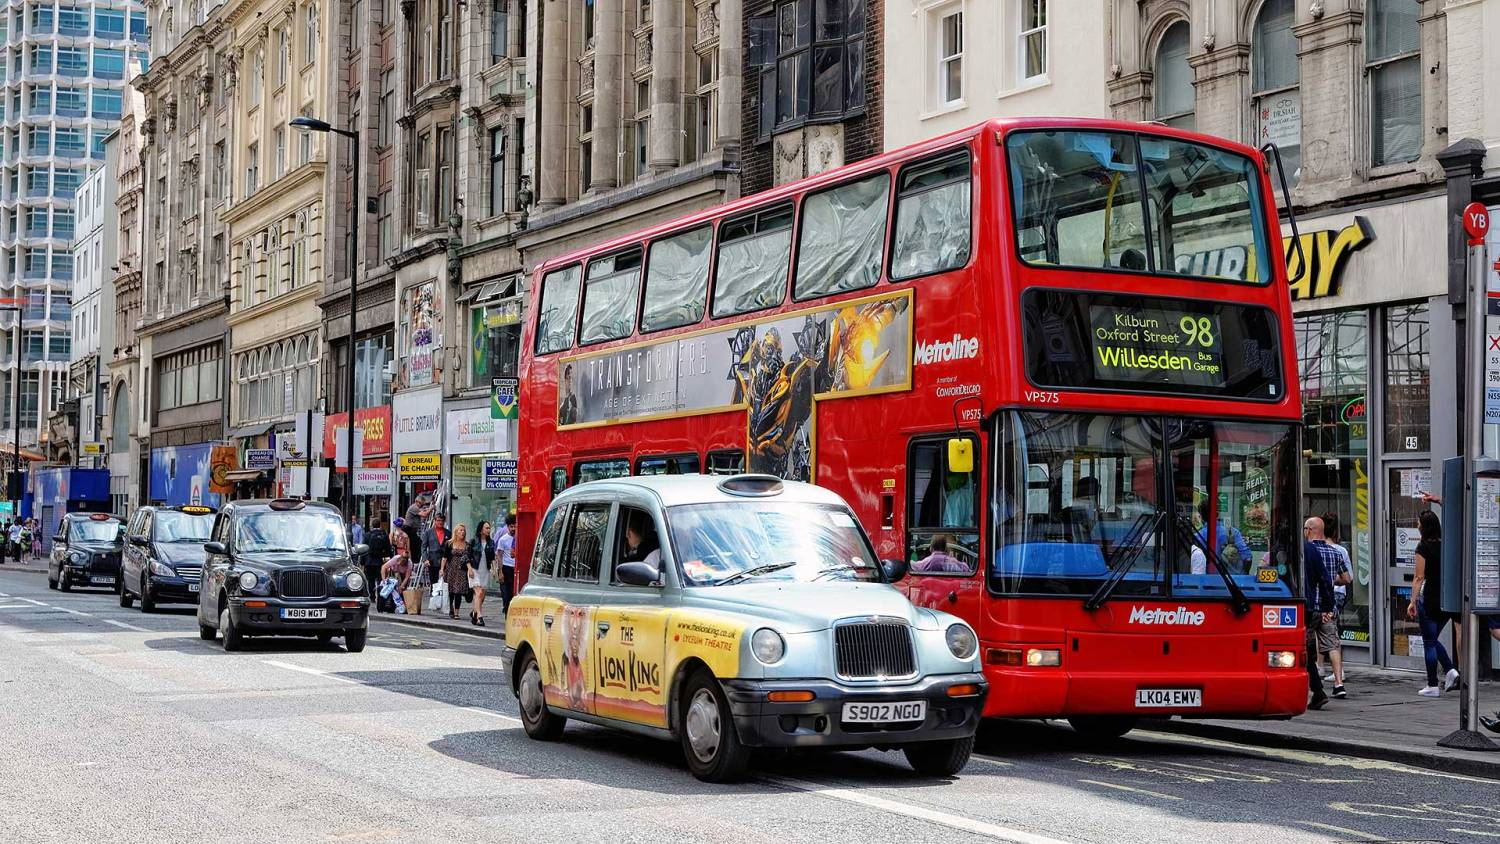 Tottenham Court Road buses and taxis